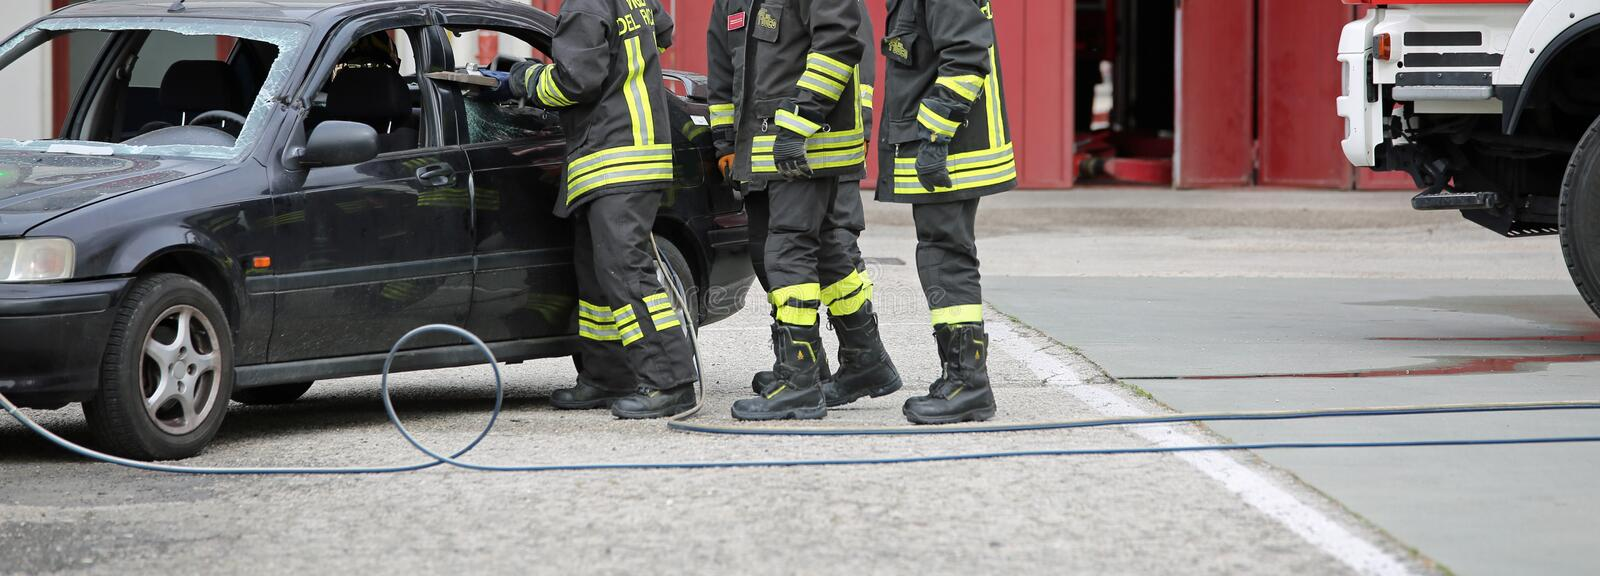 Italia, IT, Italy - May 10, 2018: Italian firefighters use the s. Hears to free the injured from the car during a practice exercise royalty free stock images